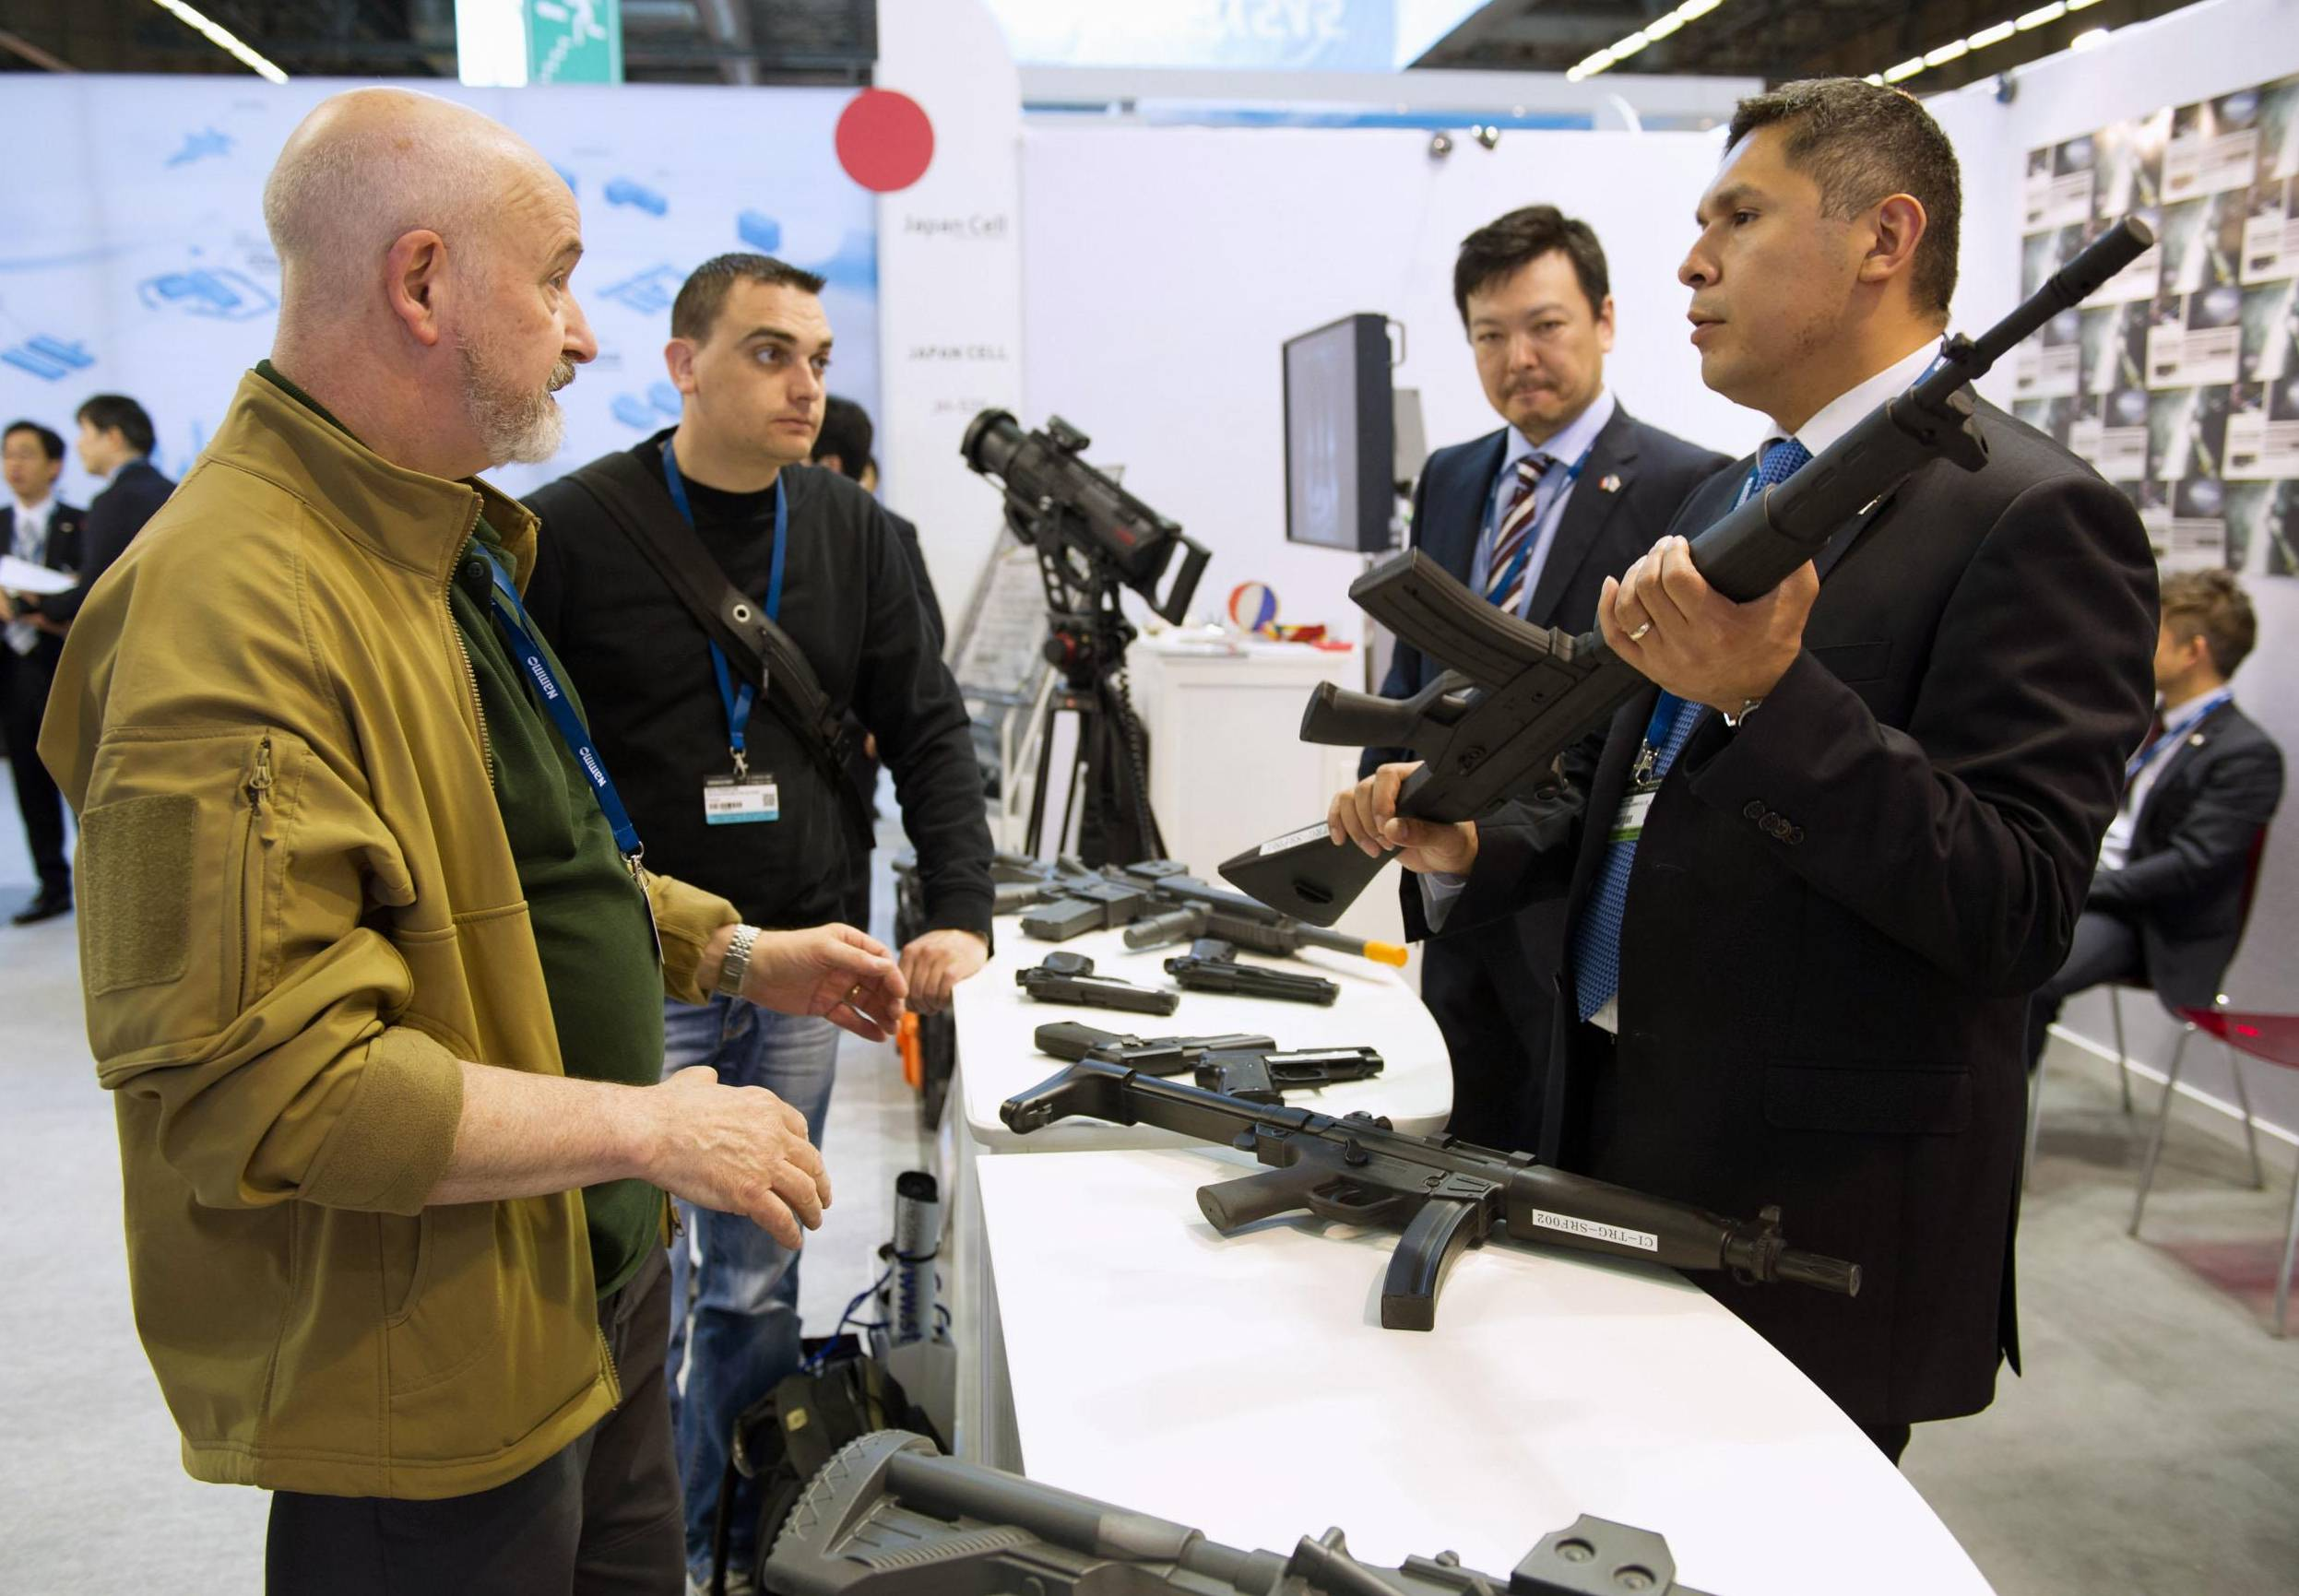 People check out rubber machine guns made for training purposes at the Japan pavilion of the Eurosatory defense fair on Monday in Paris. This is the first international weapons show to see exhibitions by Japanese companies. | KYODO